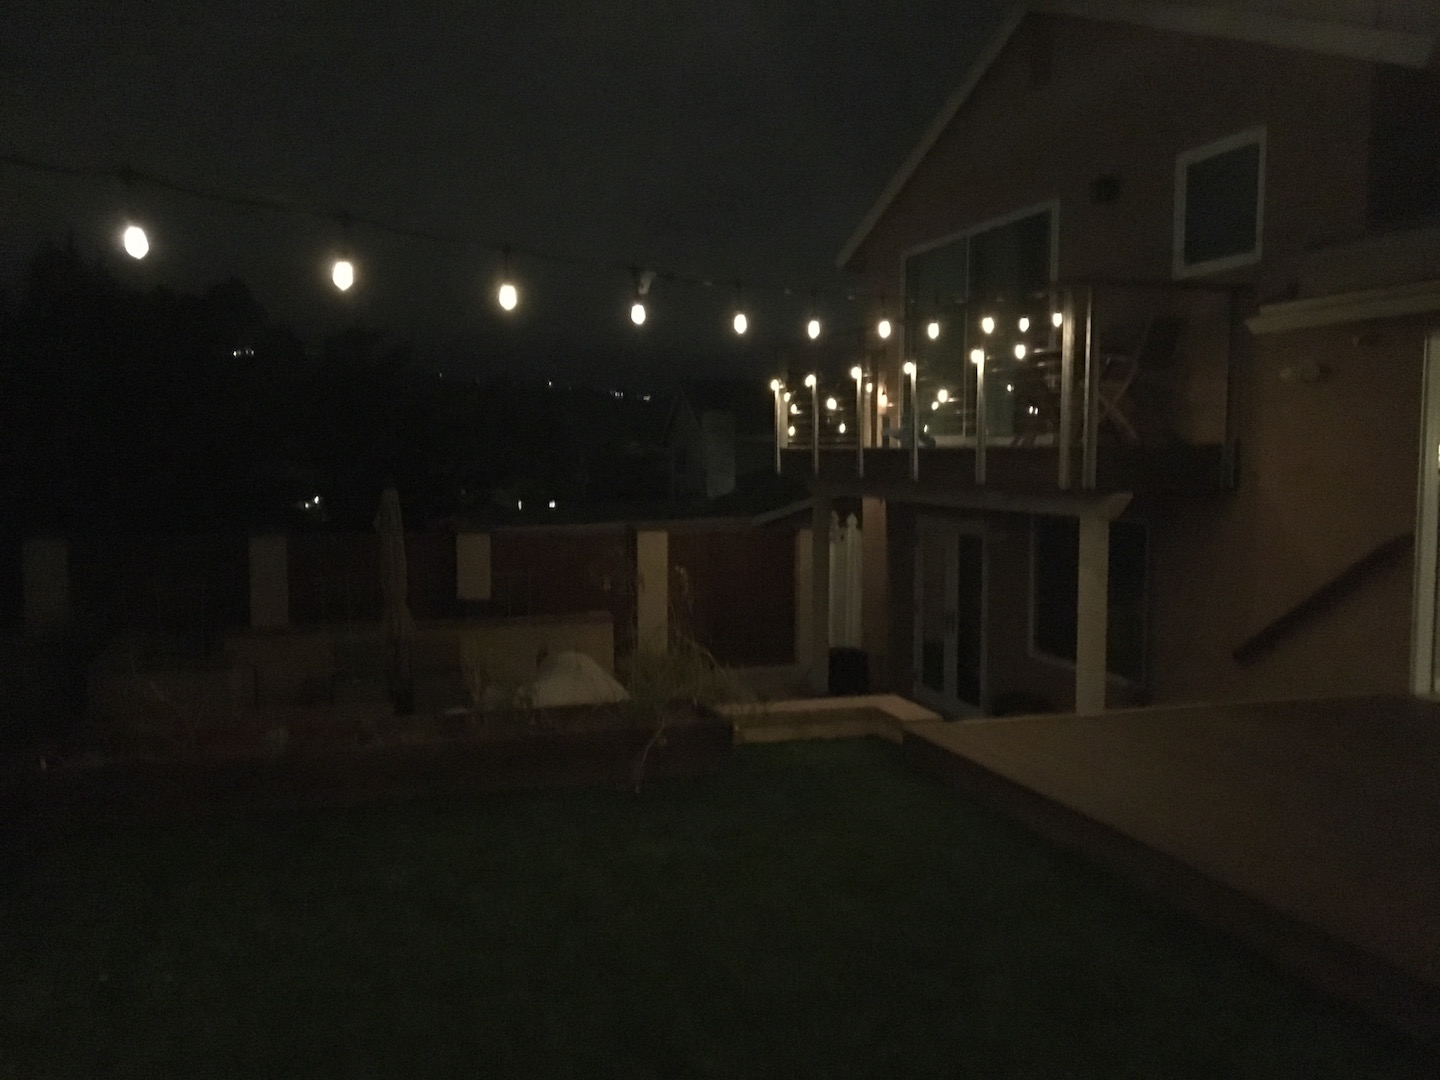 Review feit 48ft led outdoor string lights scott grubys blog final result aloadofball Choice Image